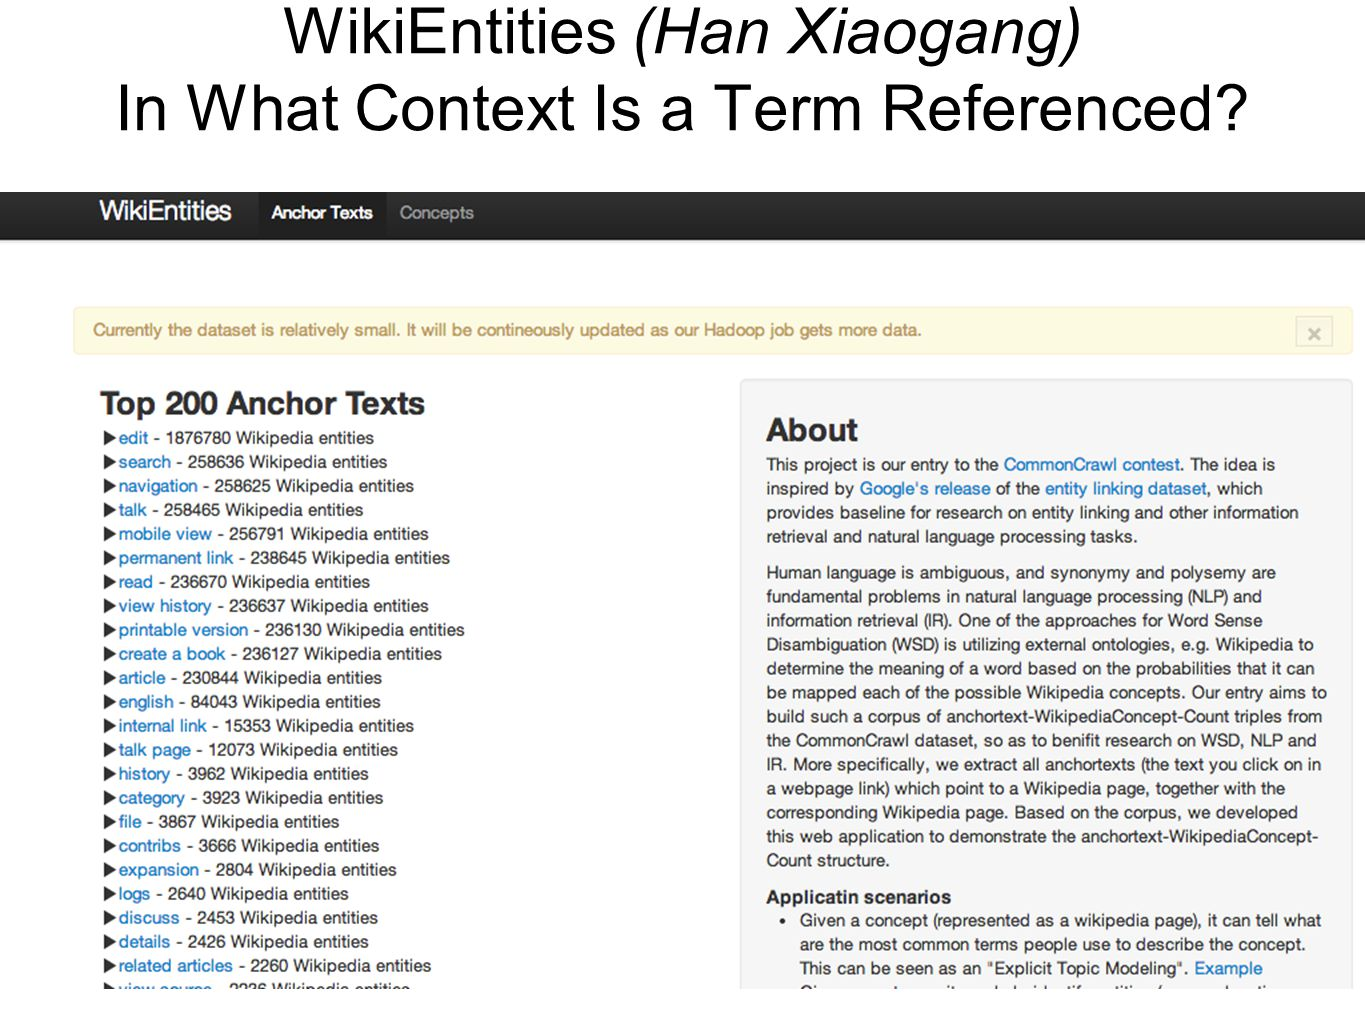 WikiEntities (Han Xiaogang) In What Context Is a Term Referenced.